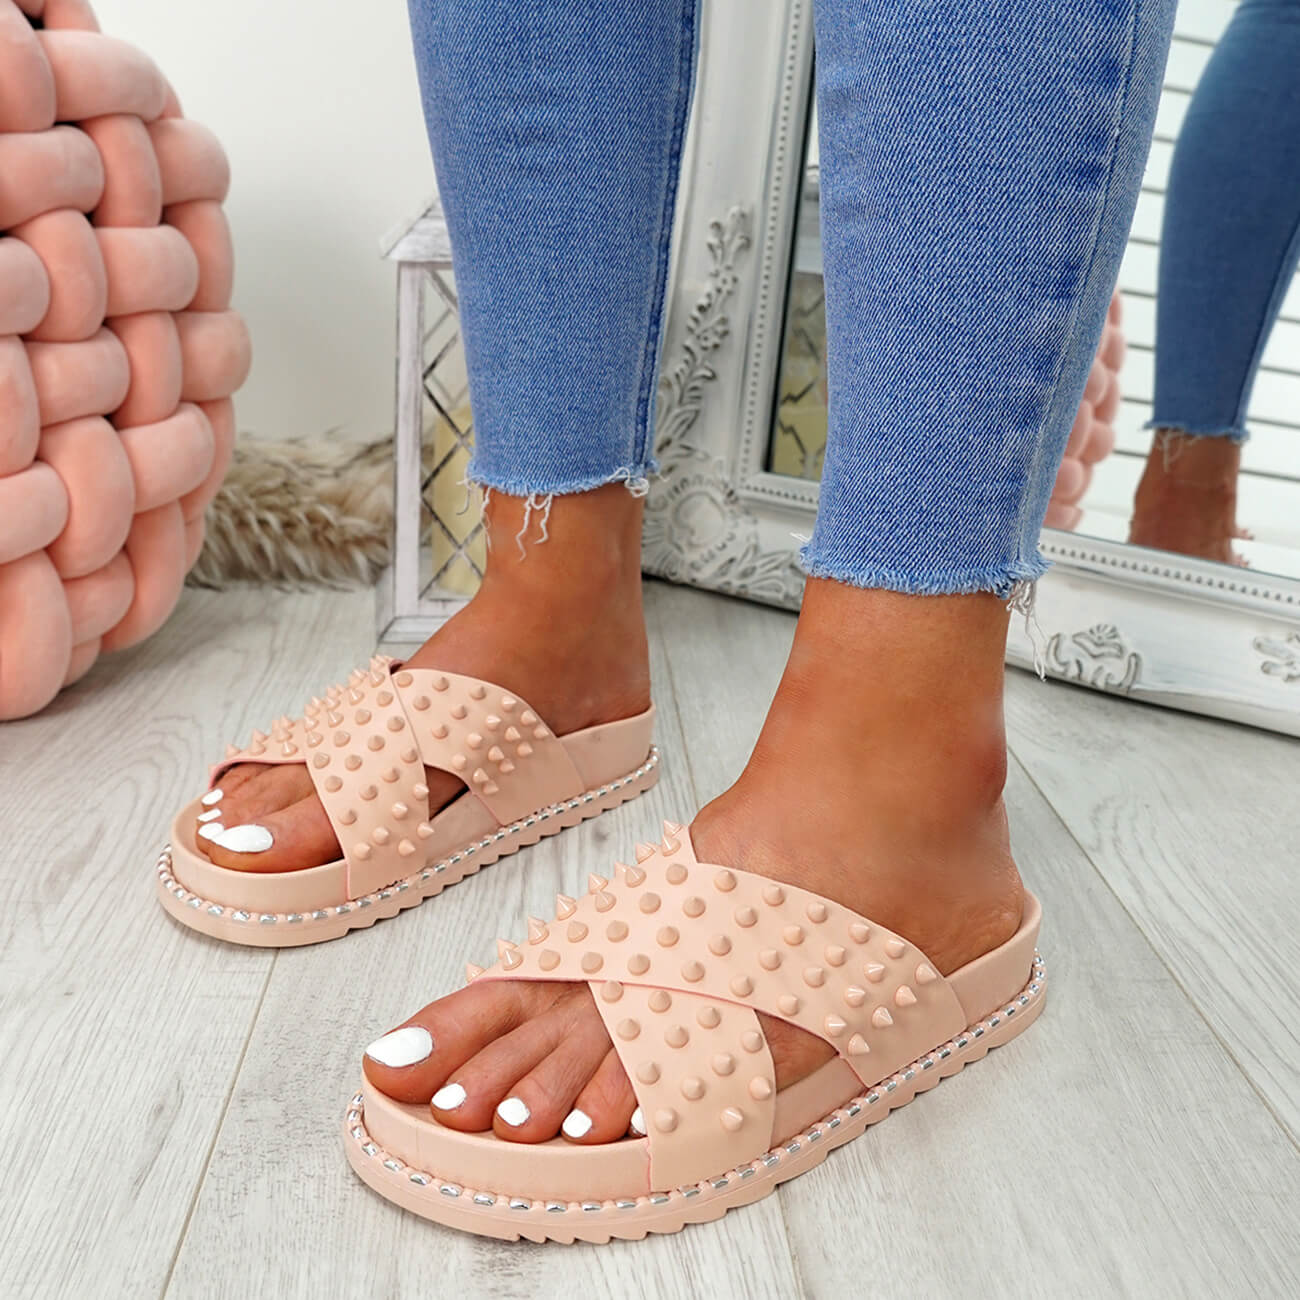 WOMENS-LADIES-SPIKE-STUDS-PEEP-TOE-FLAT-SANDALS-FLIP-FLOPS-SLIP-ON-SHOES-SIZE thumbnail 14